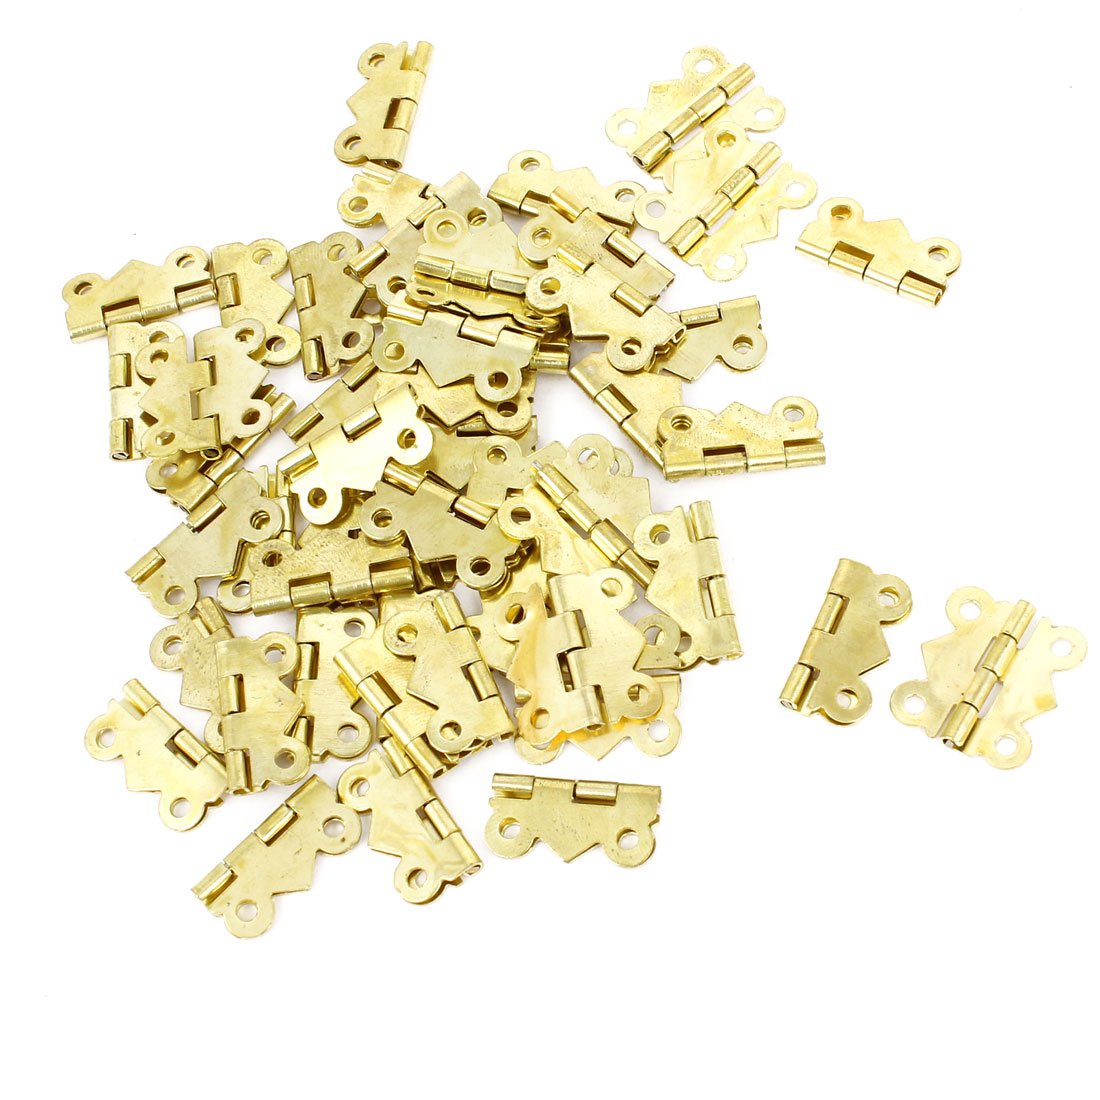 50 Pcs Gold Tone Rotatable Window Drawer Door Butt Hinges 2cm Long